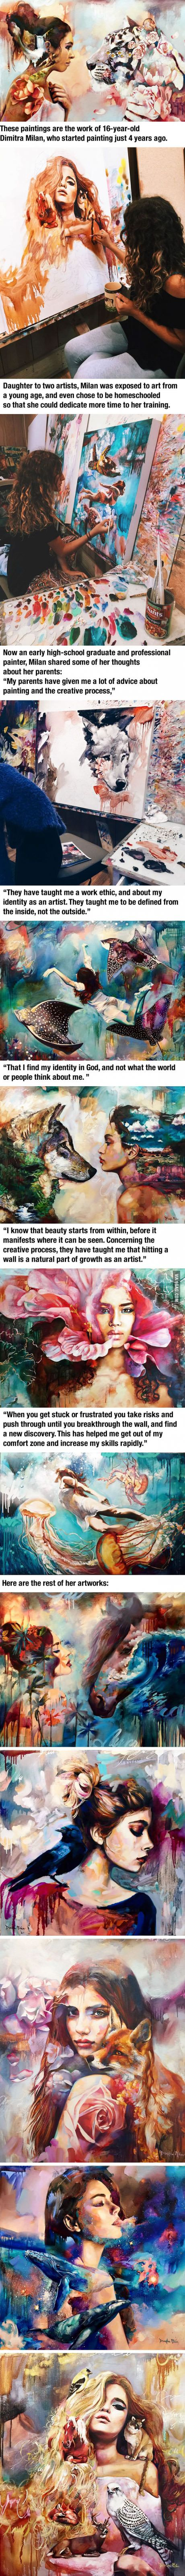 Best Amazing Paintings Ideas On Pinterest Art Drawings - Physical movement turned amazing art